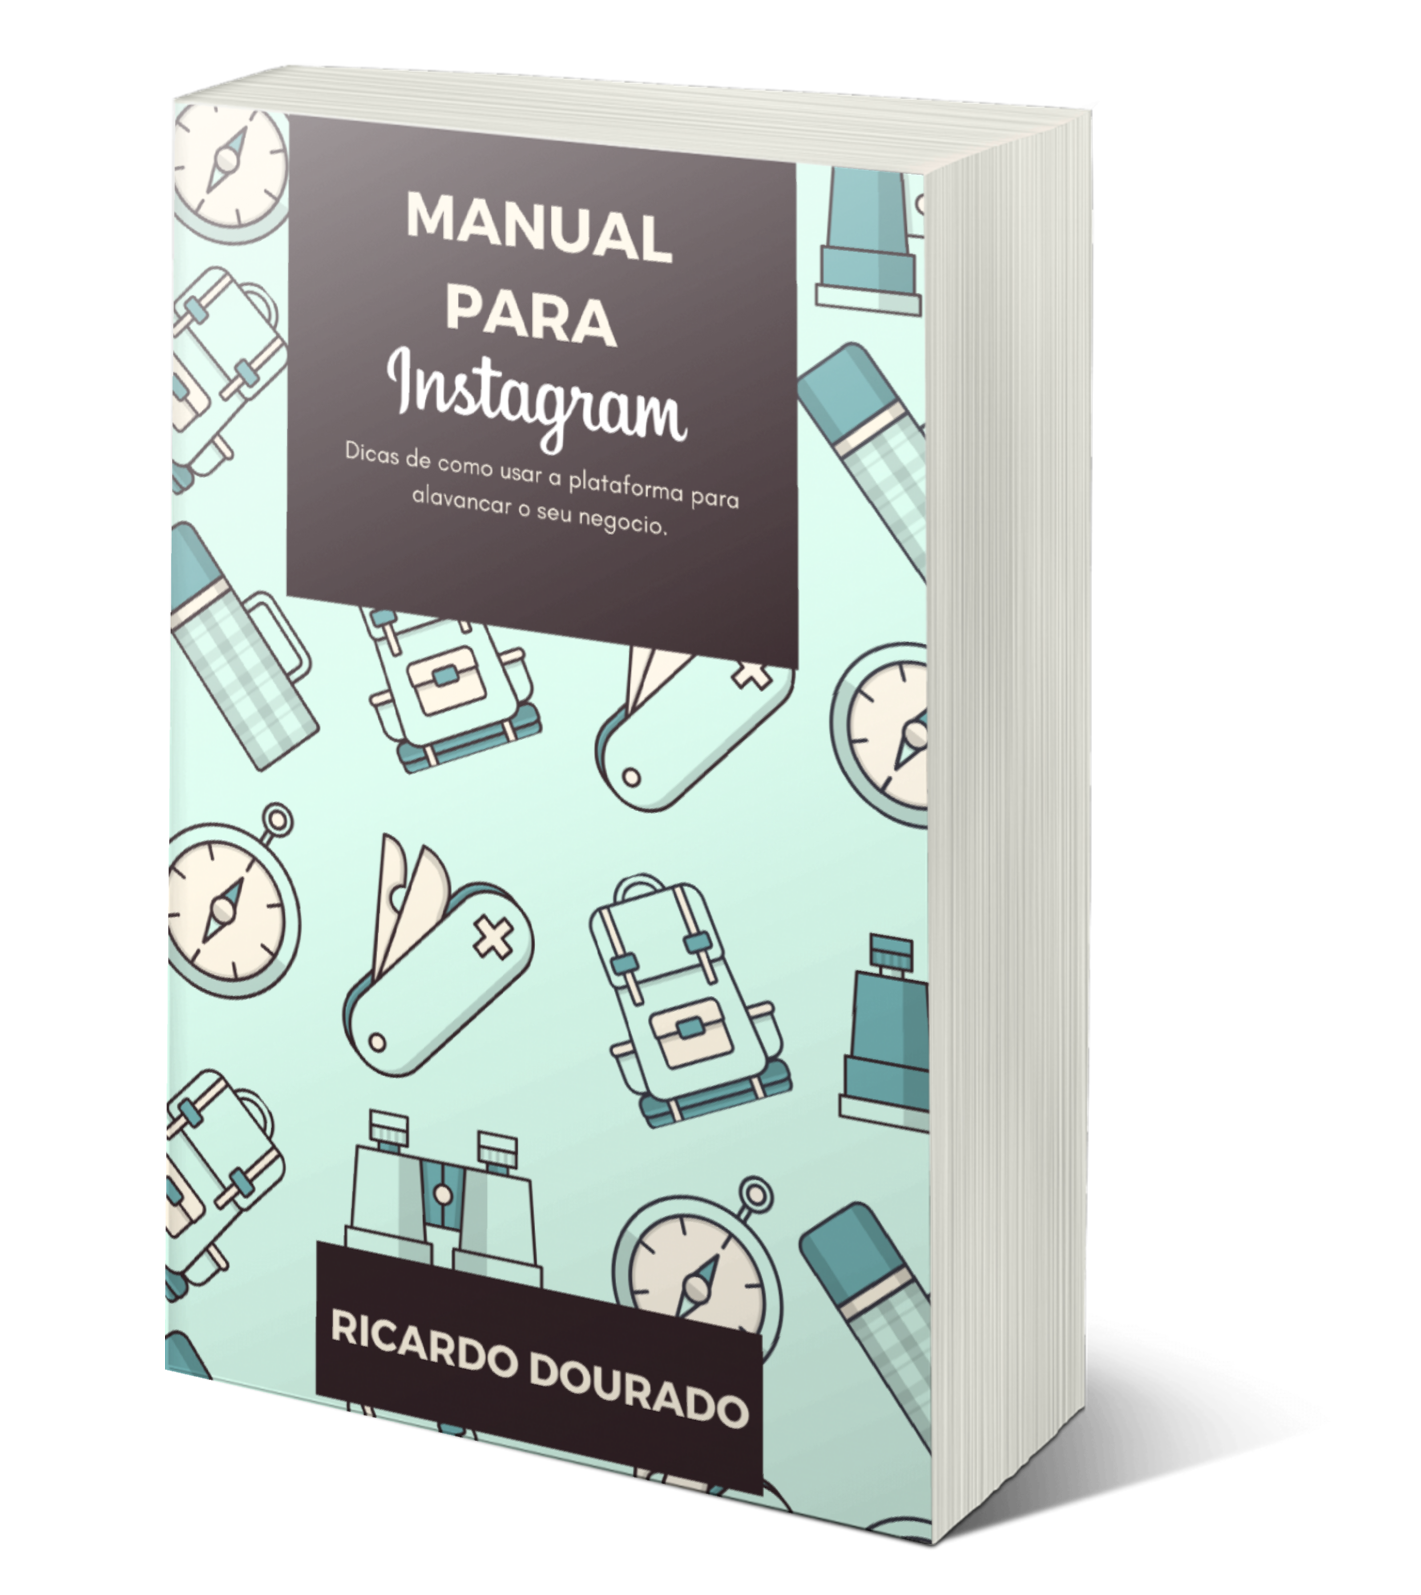 Manual para instagram